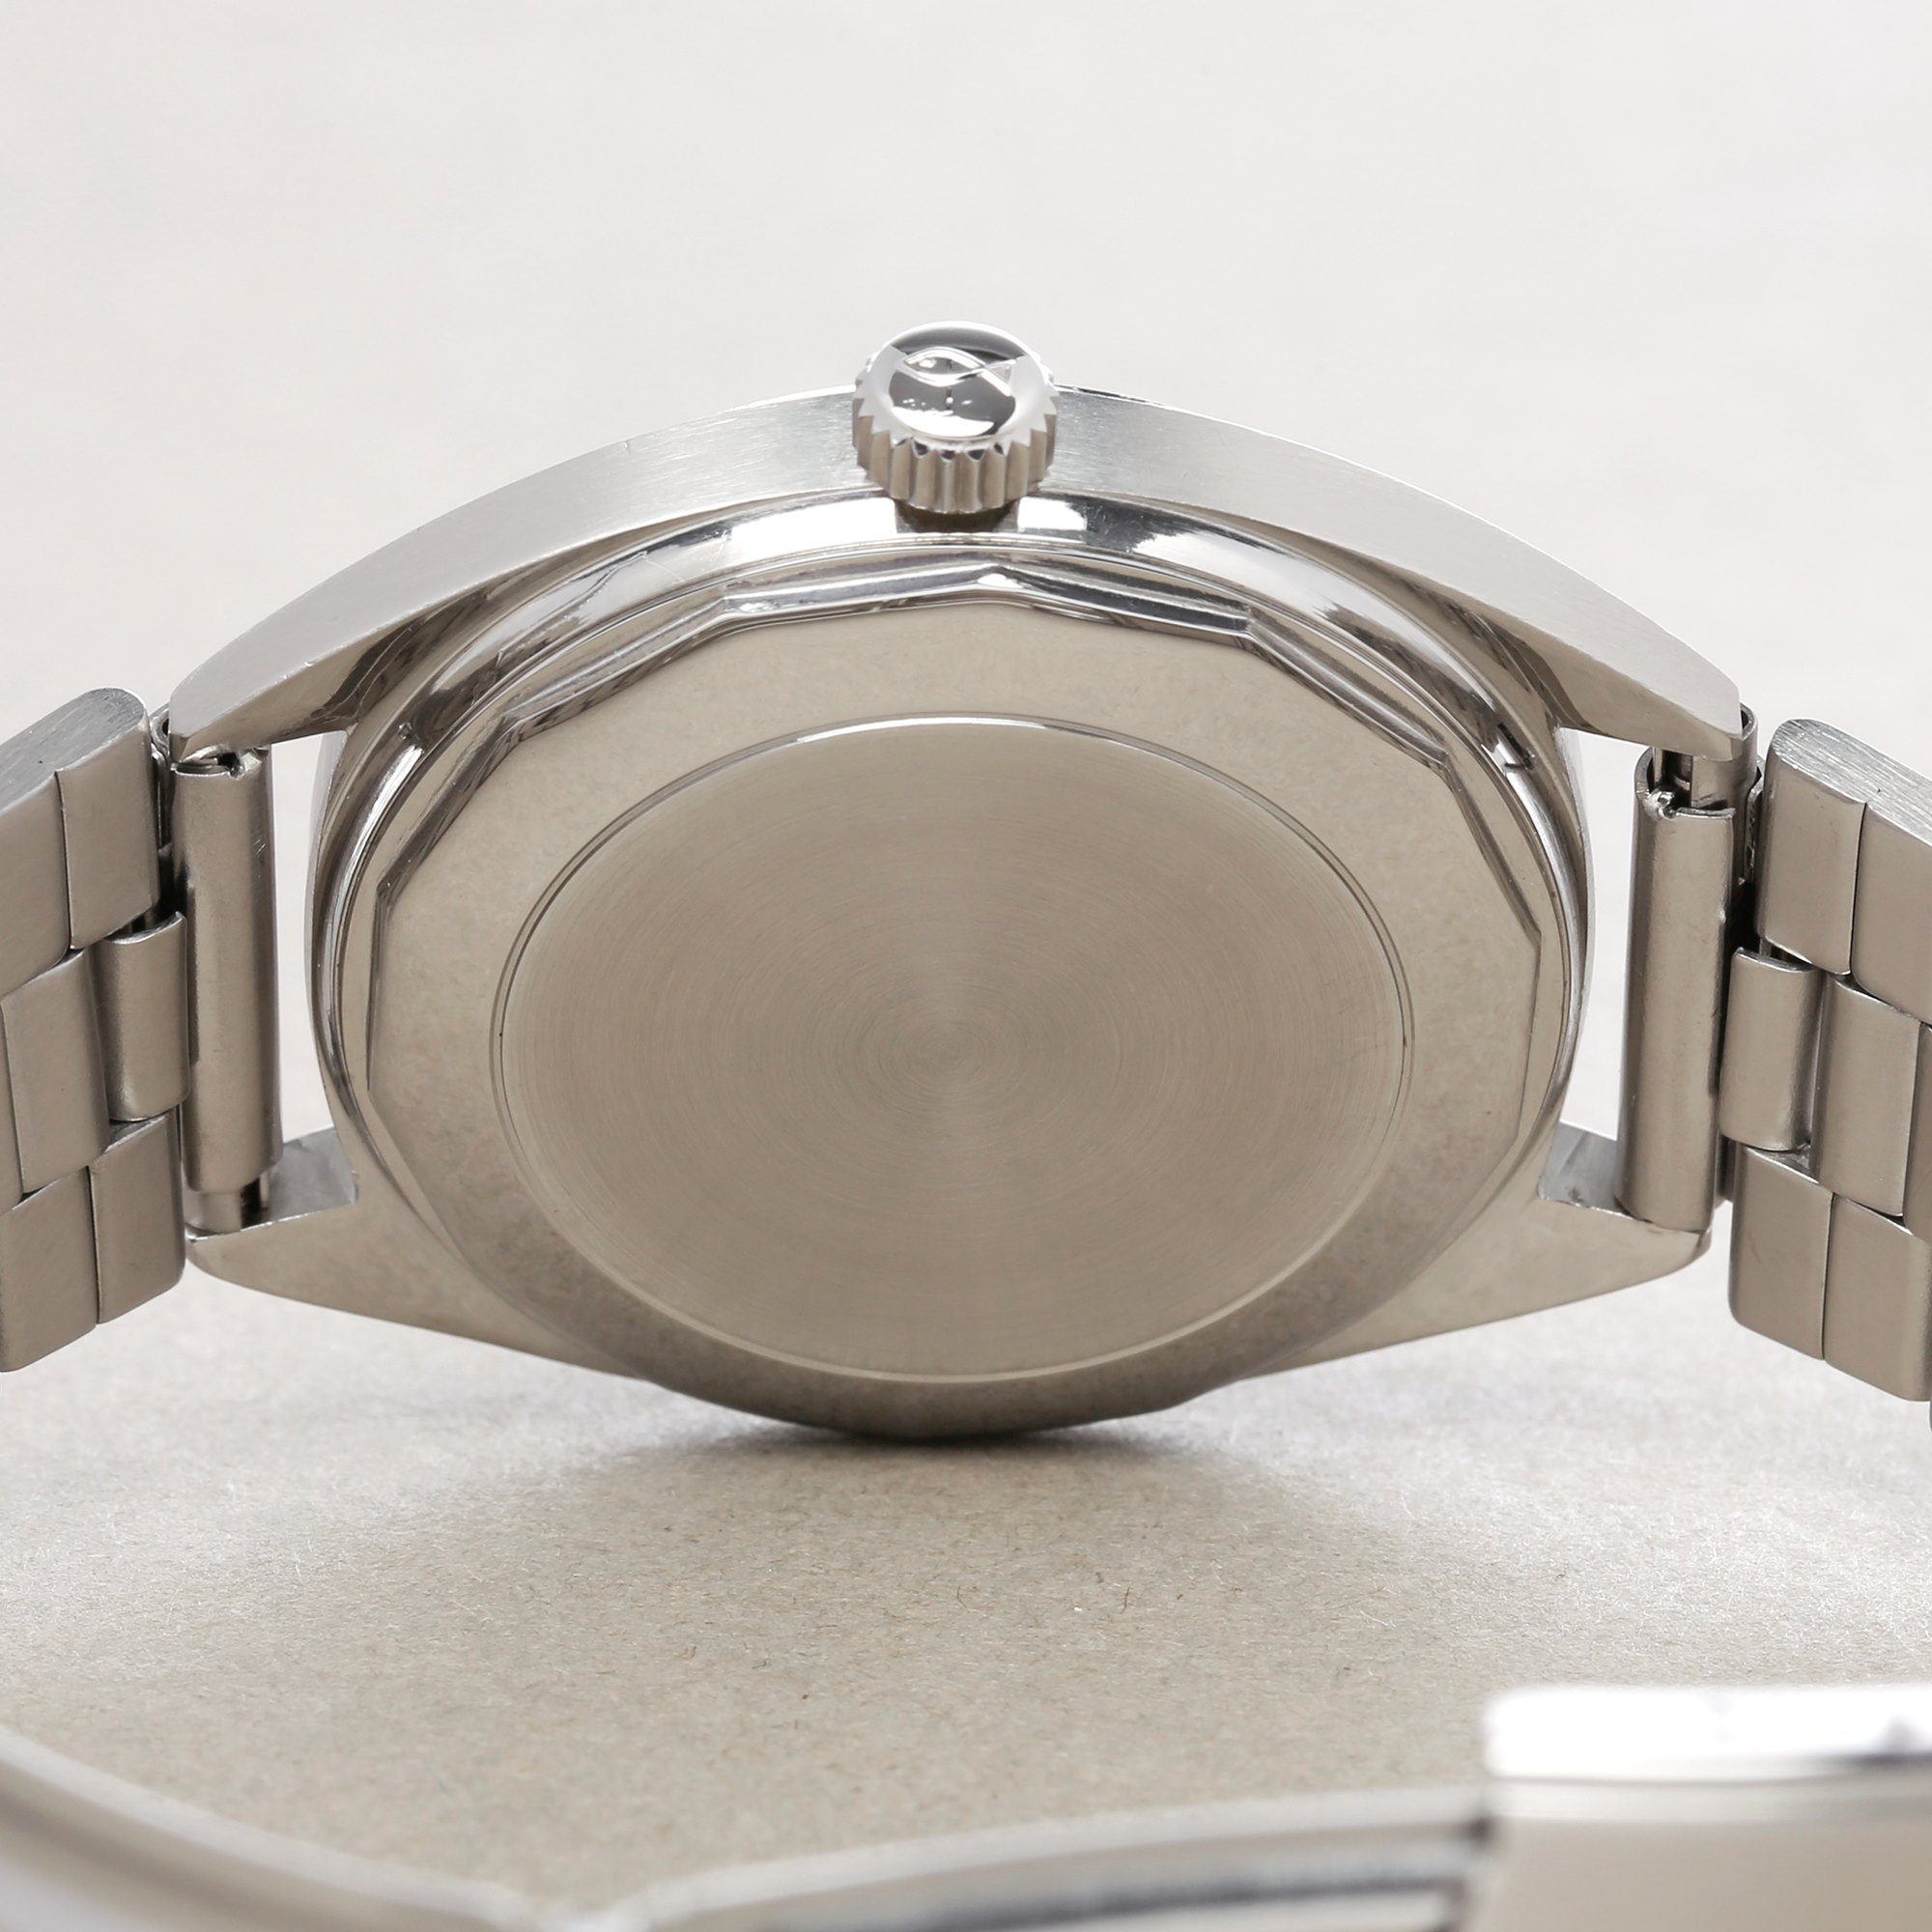 IWC Yacht Club Vintage Stainless Steel R811